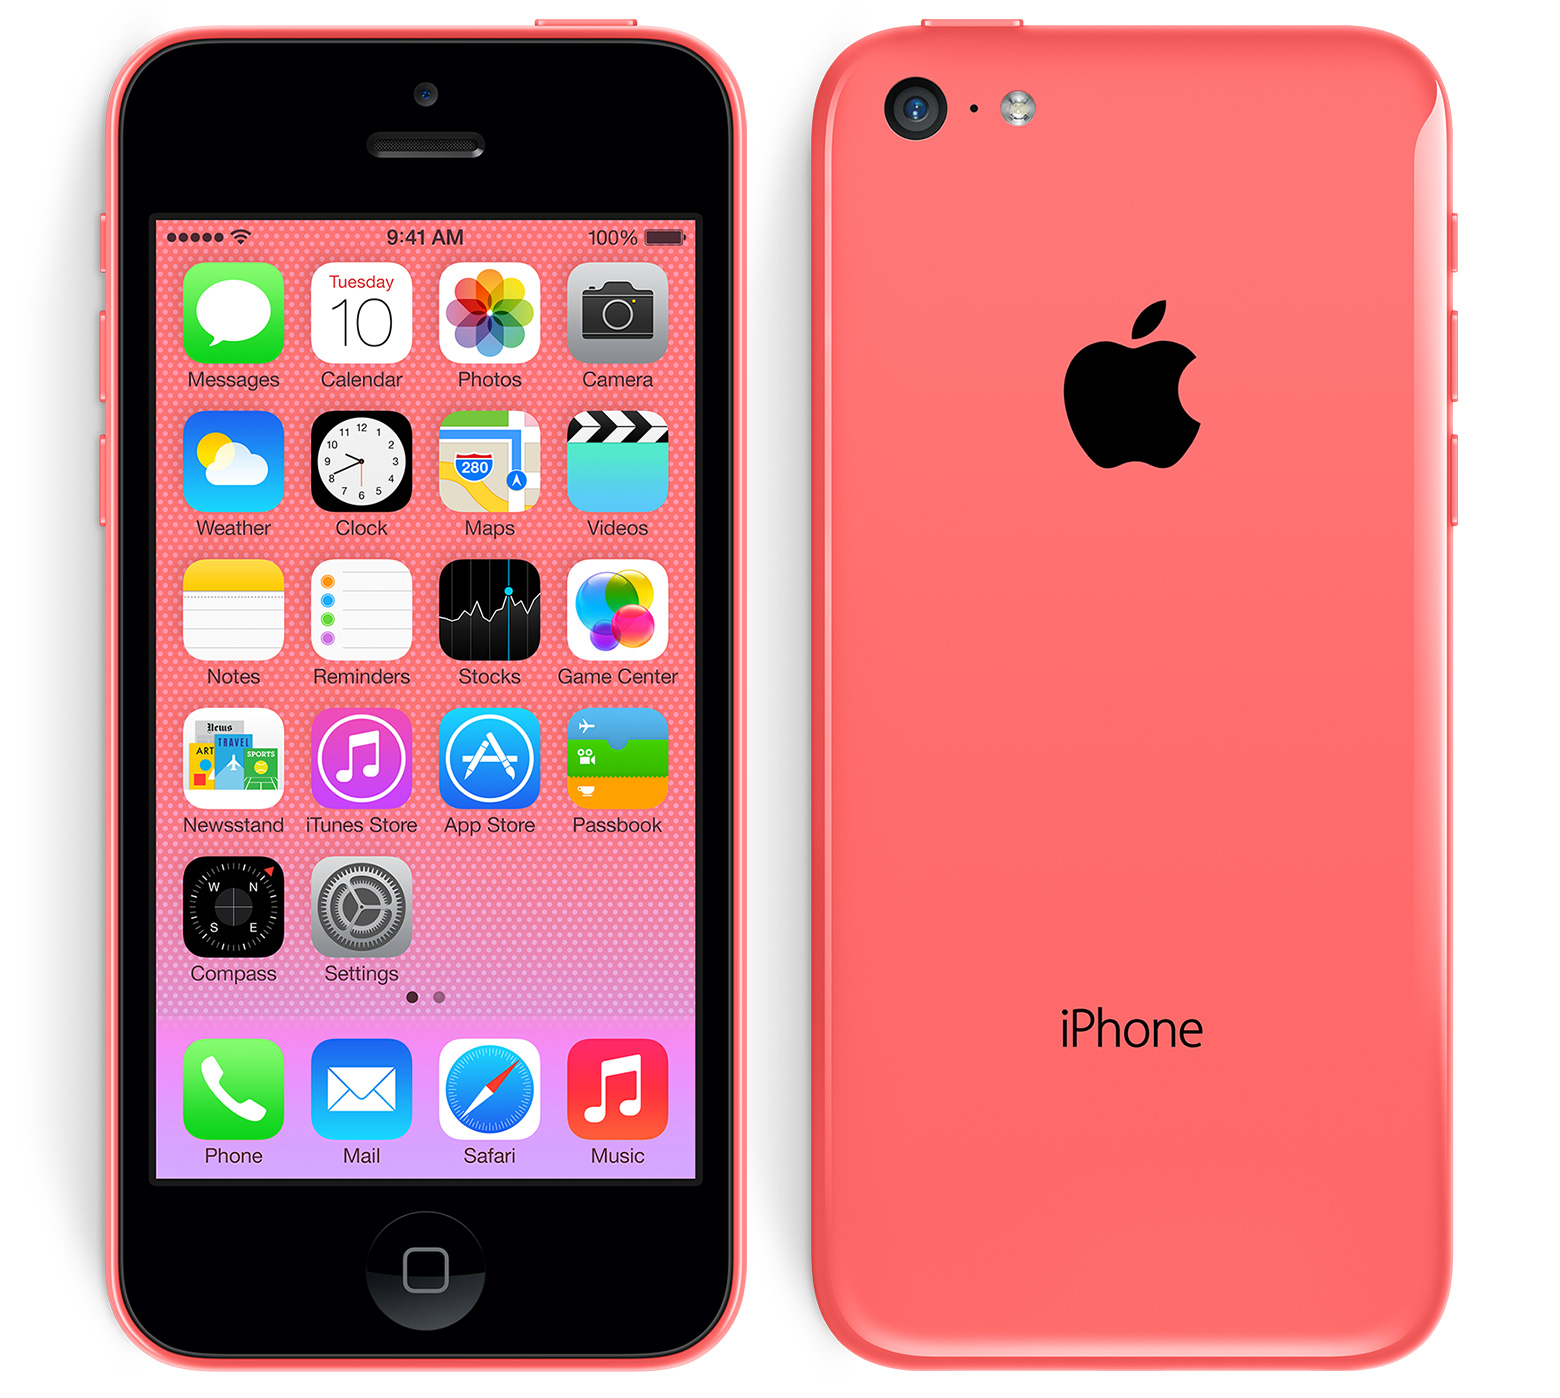 iPhone 5C: What's New? | iSource Iphone 5c